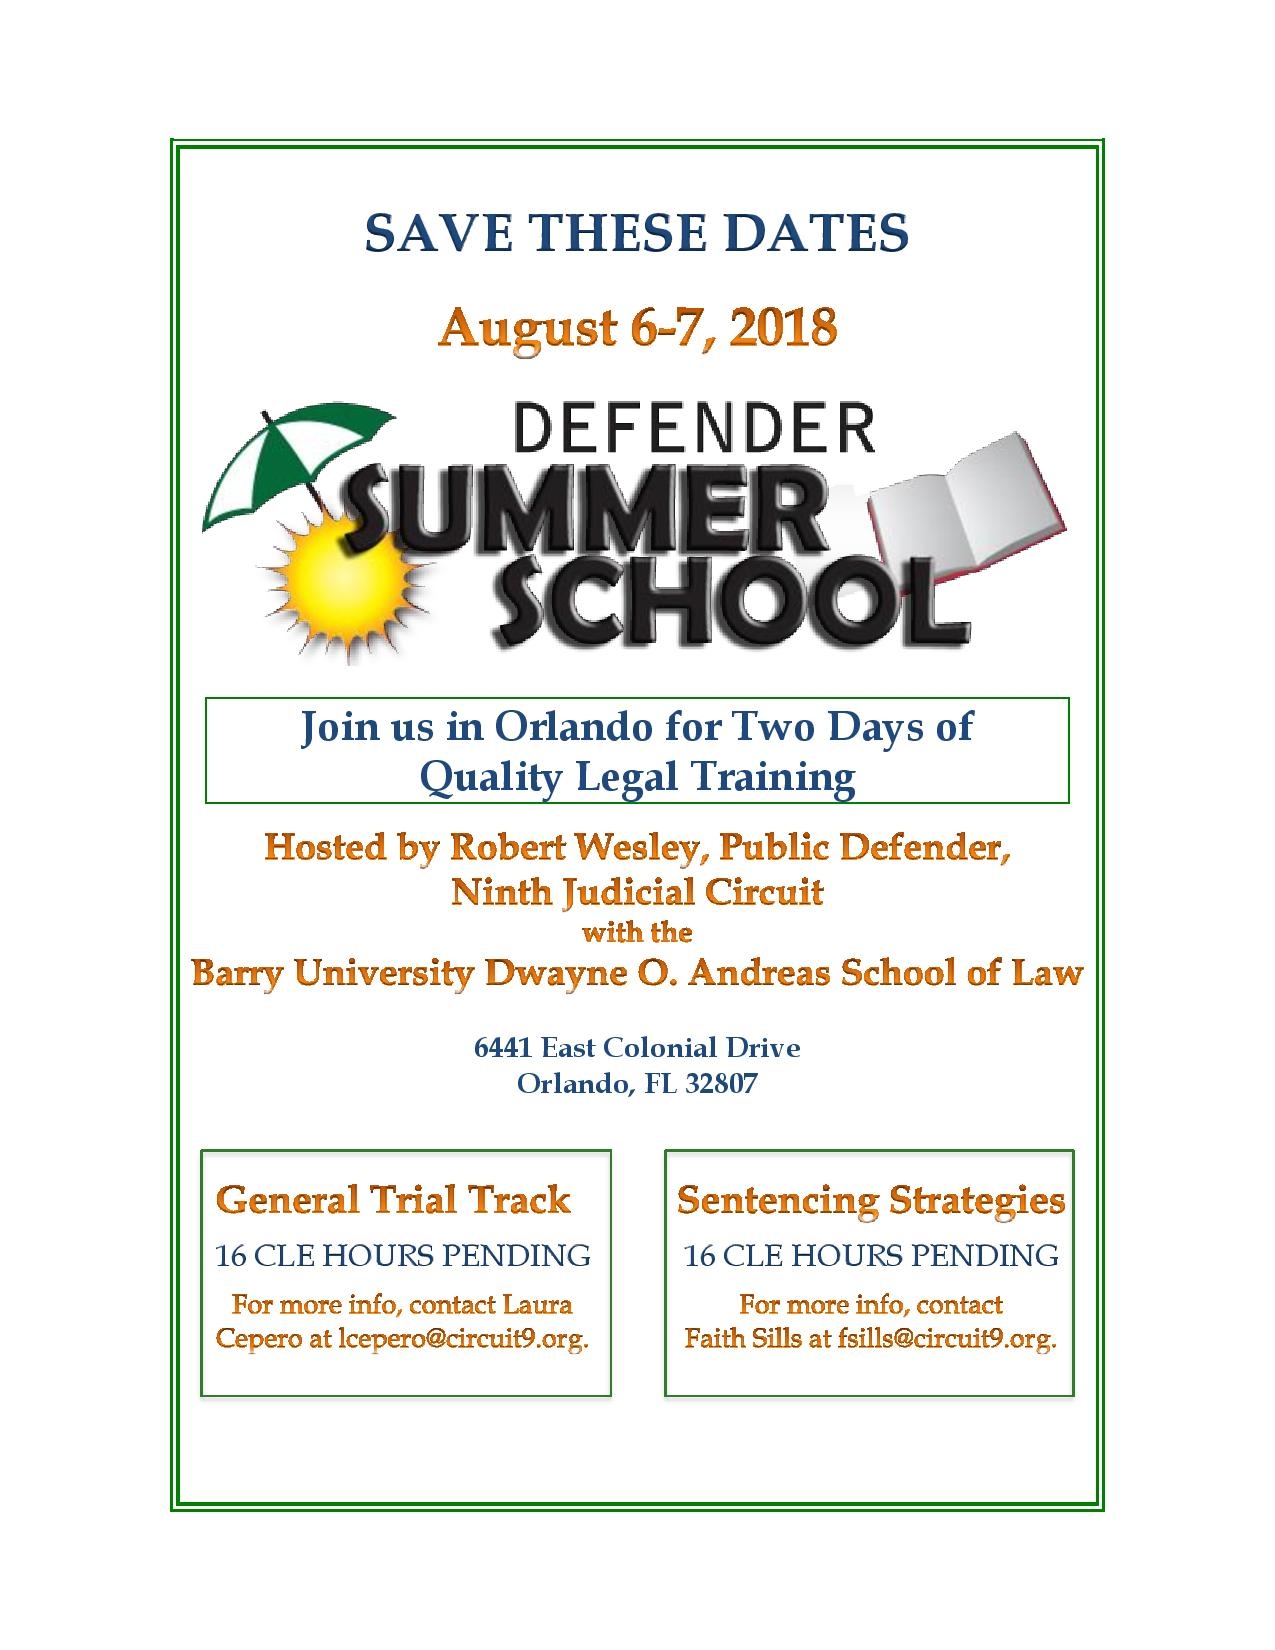 Save The Date Defender Summer School Florida Mental Health Law Also Can I Run Them In A Parallel Or Some Kind Of Circuit To June 20 2018 By Public 9th